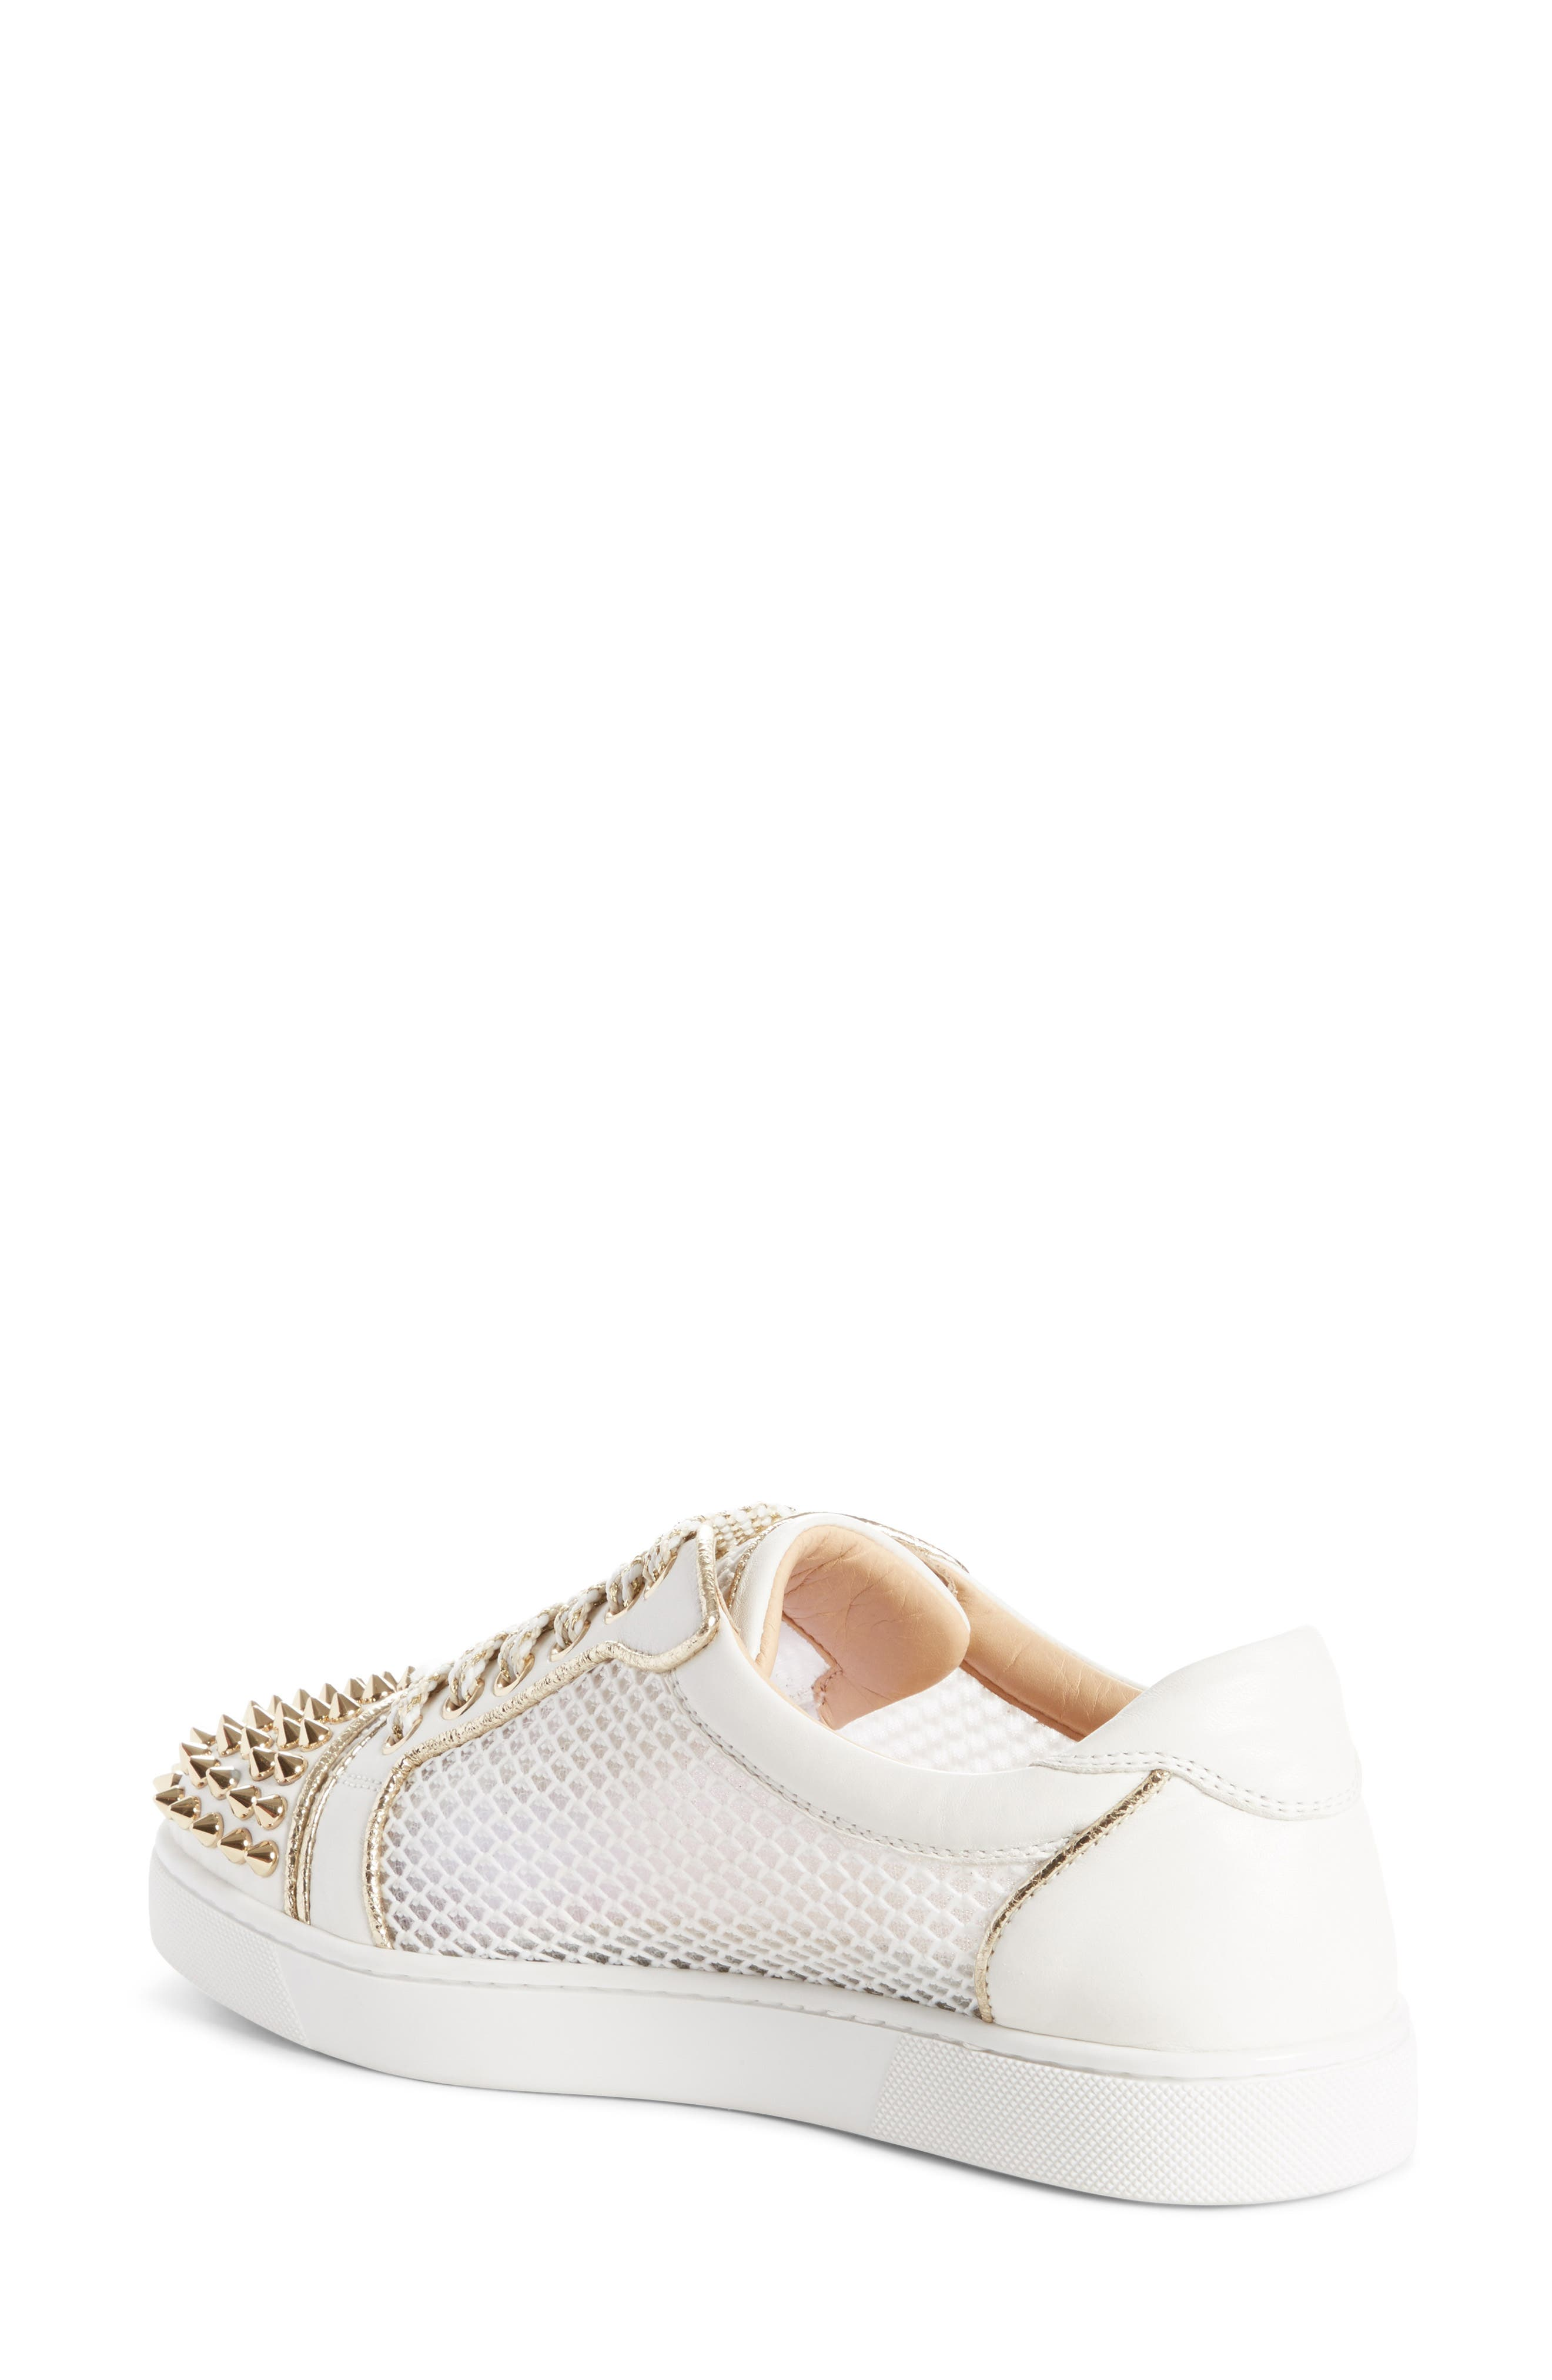 Vieira Spiked Low Top Sneaker,                             Alternate thumbnail 2, color,                             Latte/ Light Gold